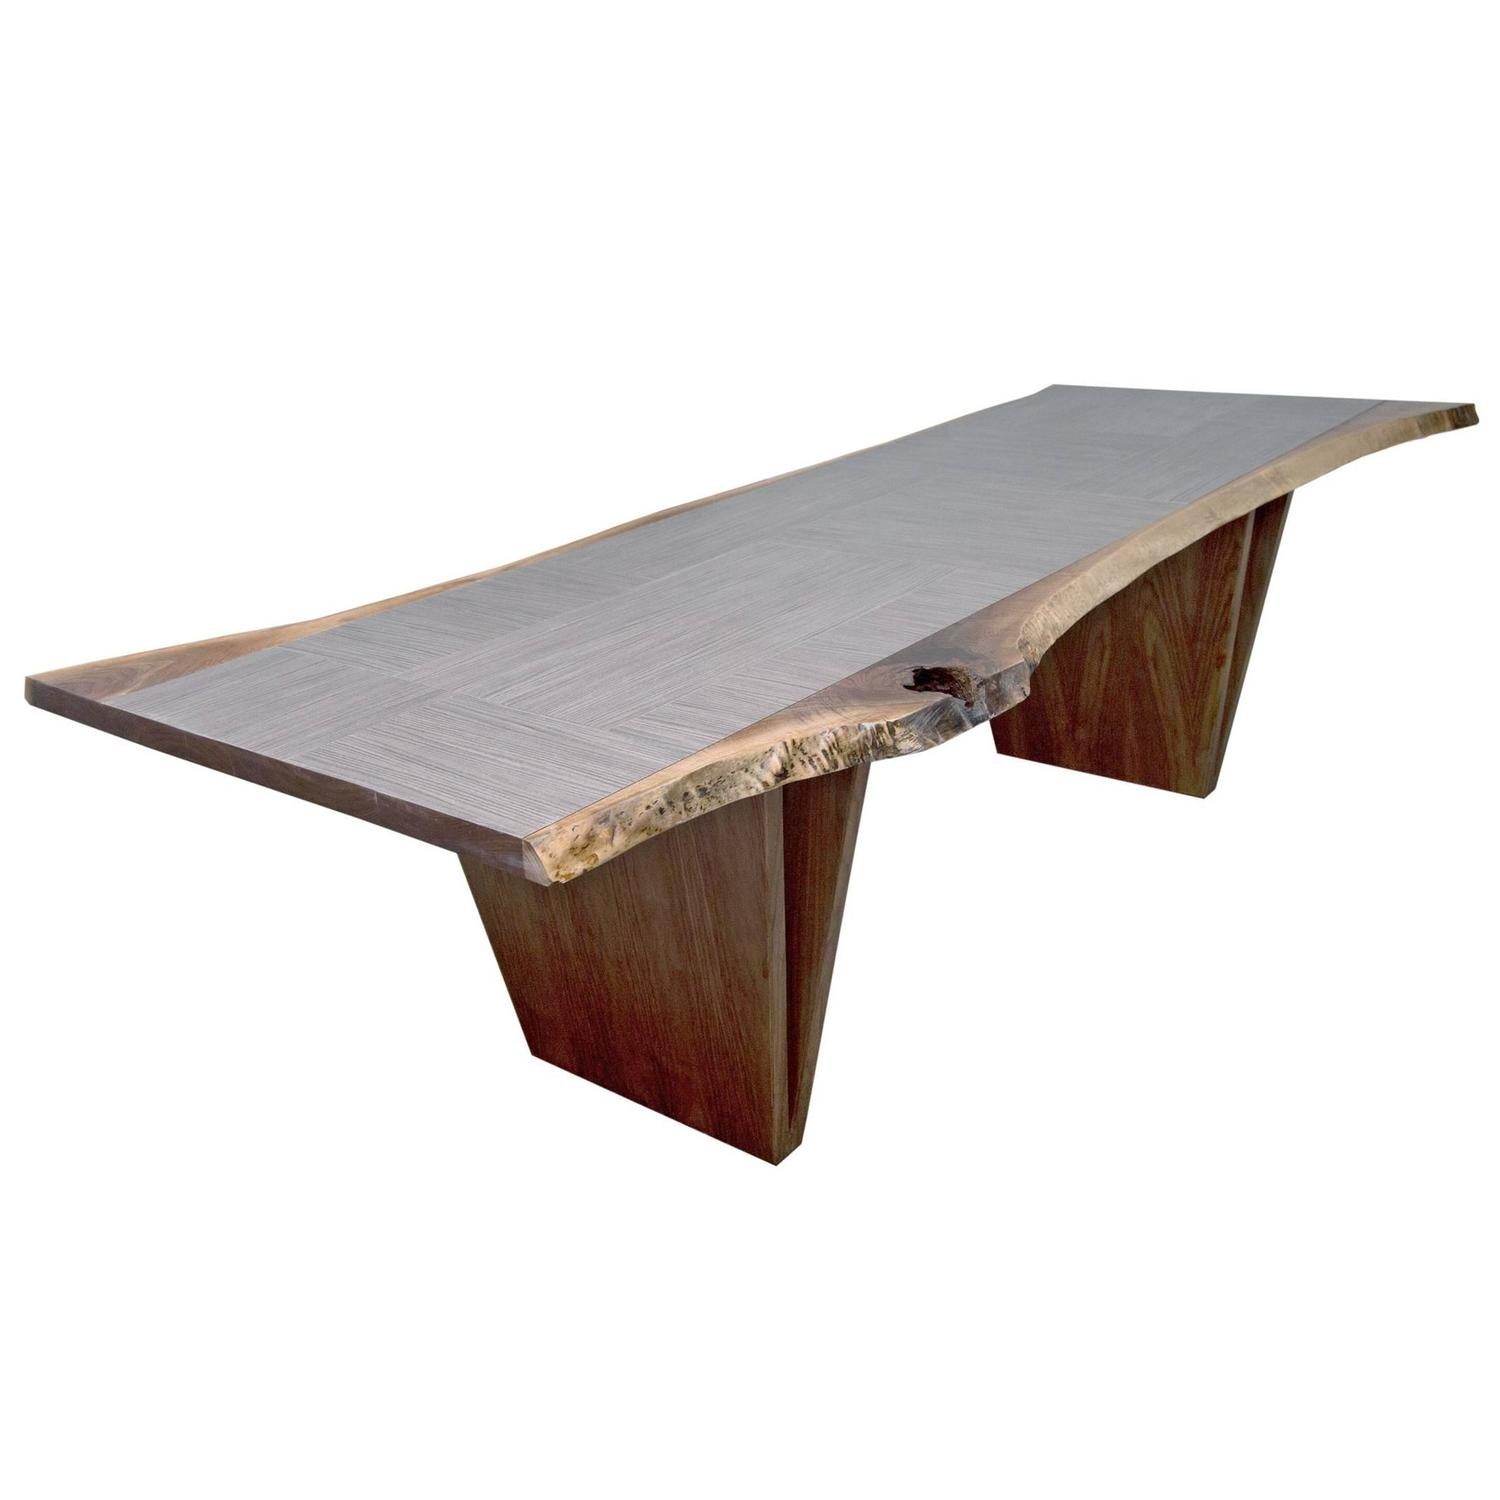 Sentient Live Edge American Black Walnut Shapes Table with Grey